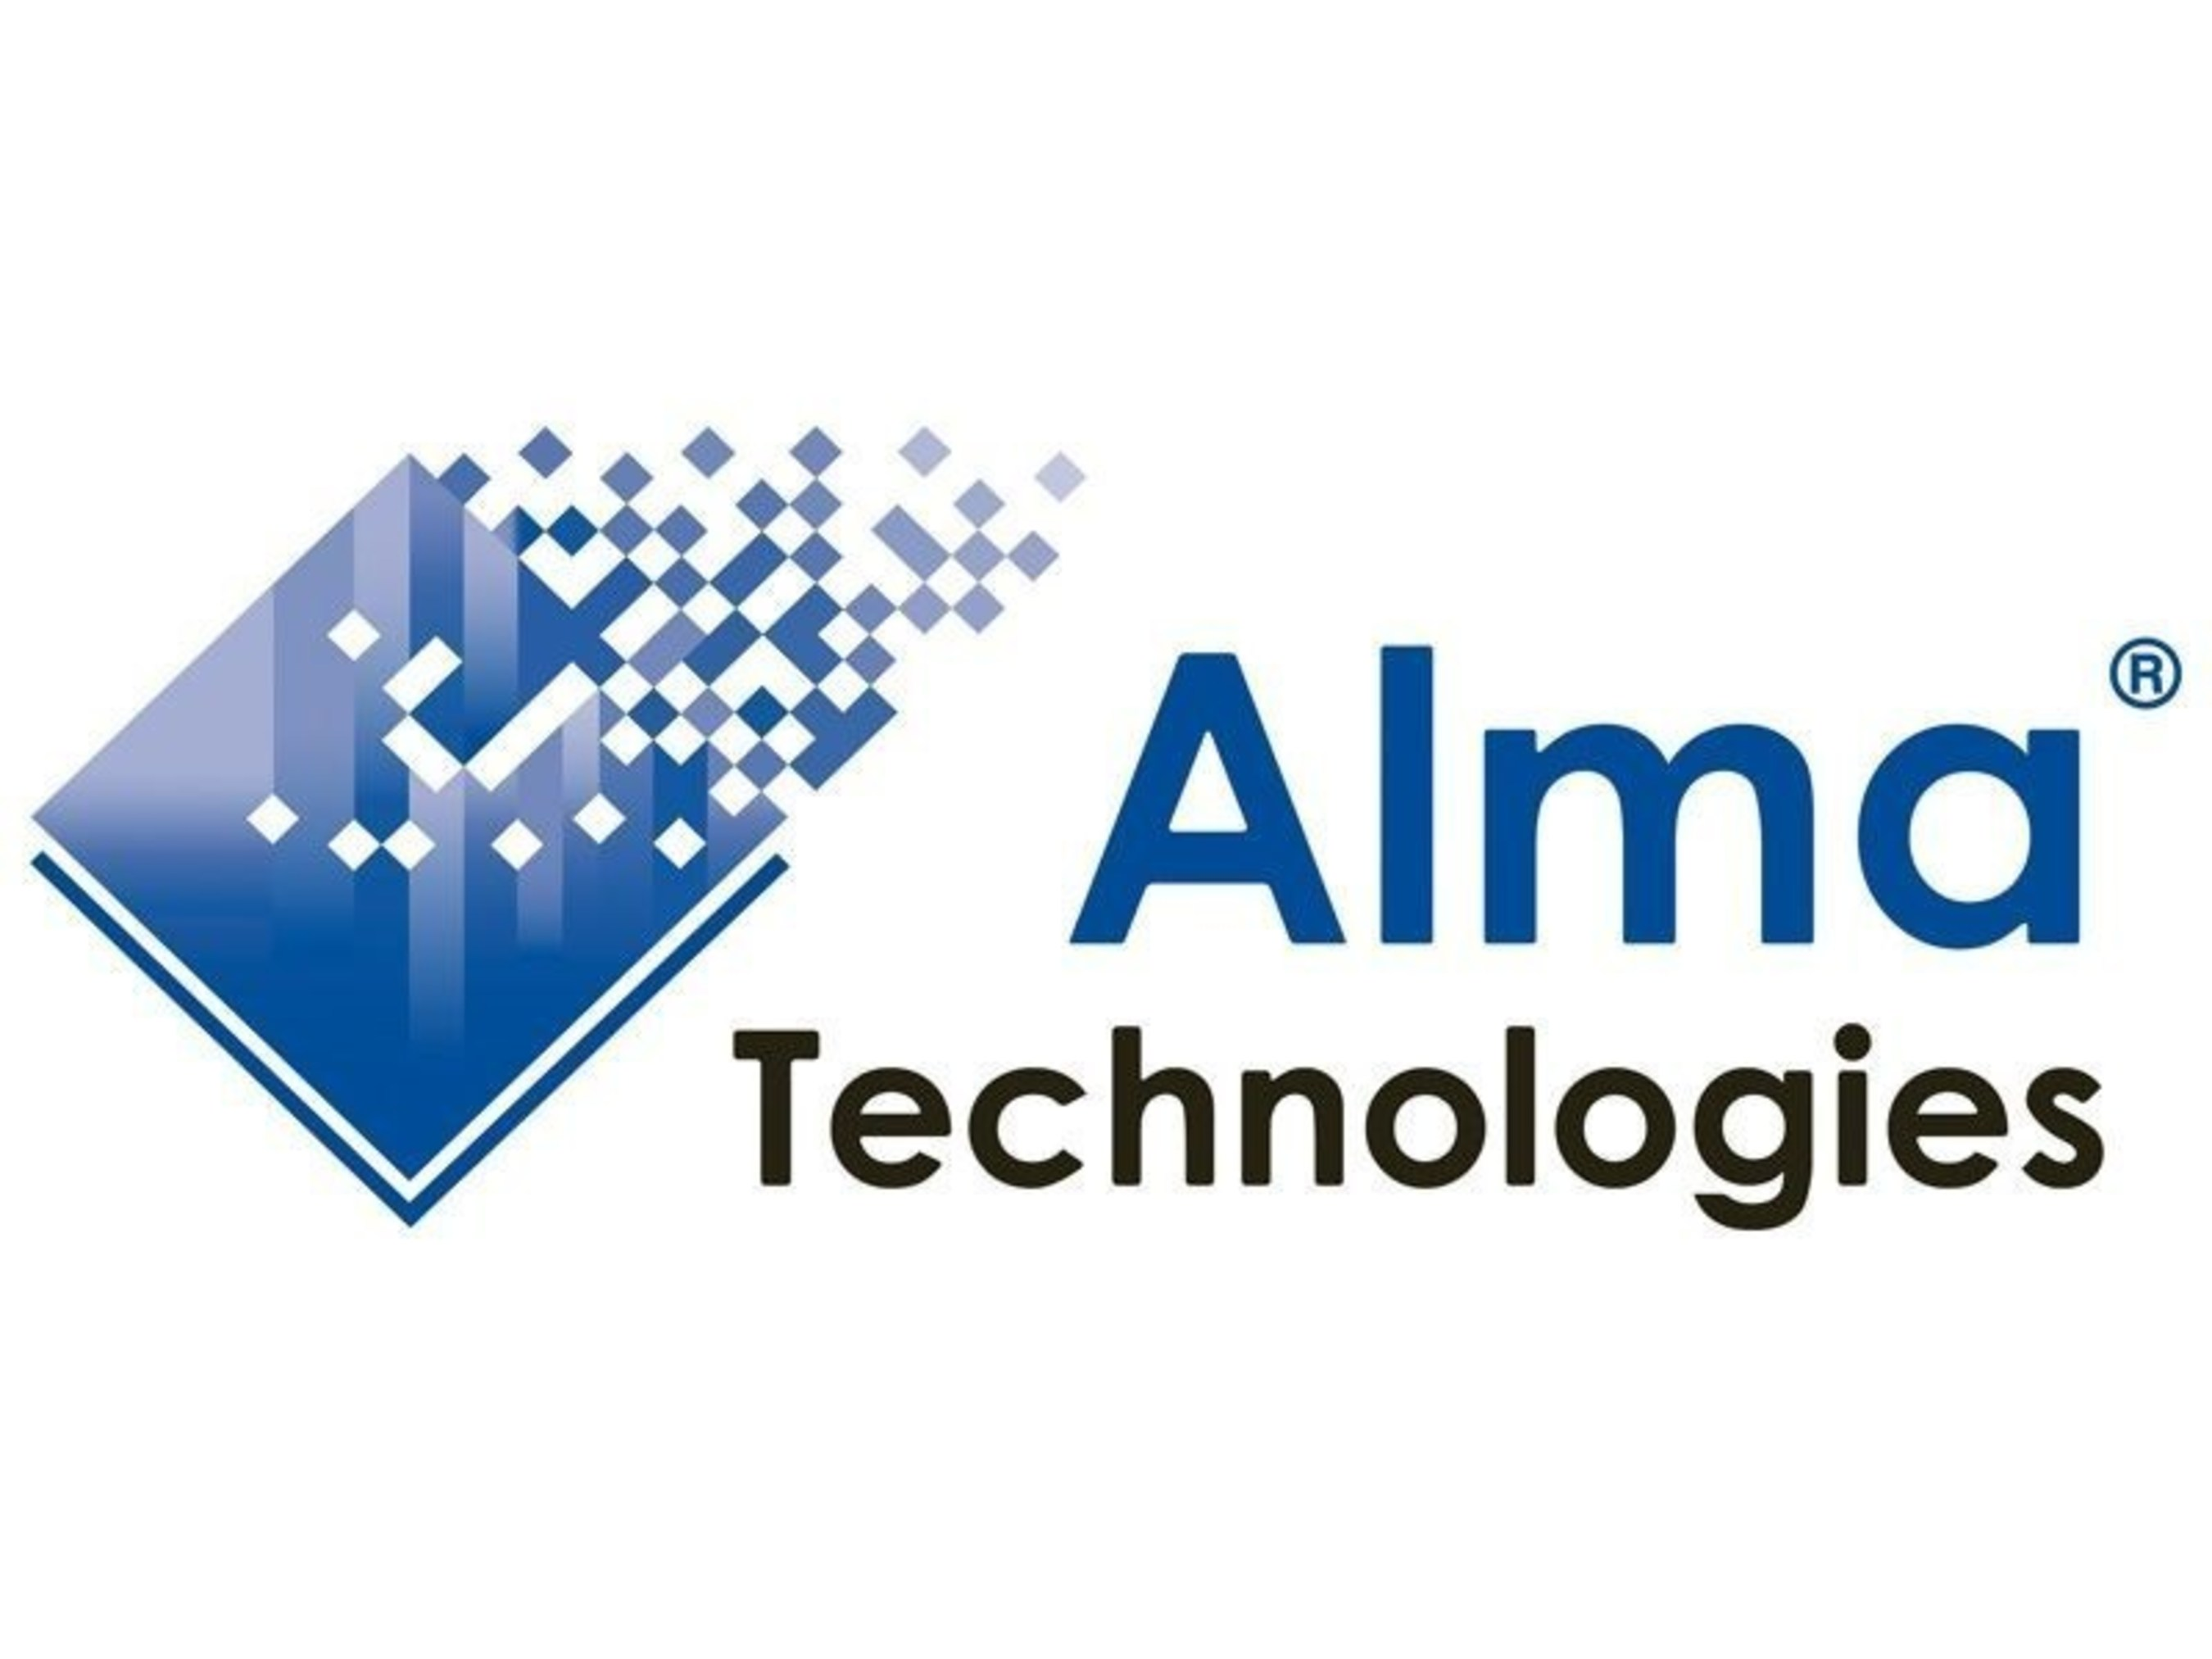 Alma Technologies is a semiconductor IP provider, designing high-quality FPGA and ASIC IP cores since 2001. Its products stand out for their engineering, being complete, easy-to-use and reliable IP solutions. World-class technical support and a long track record of proven designs by more than 200 licensees in over 20 countries provide Alma Technologies customers with excellent service and great value.